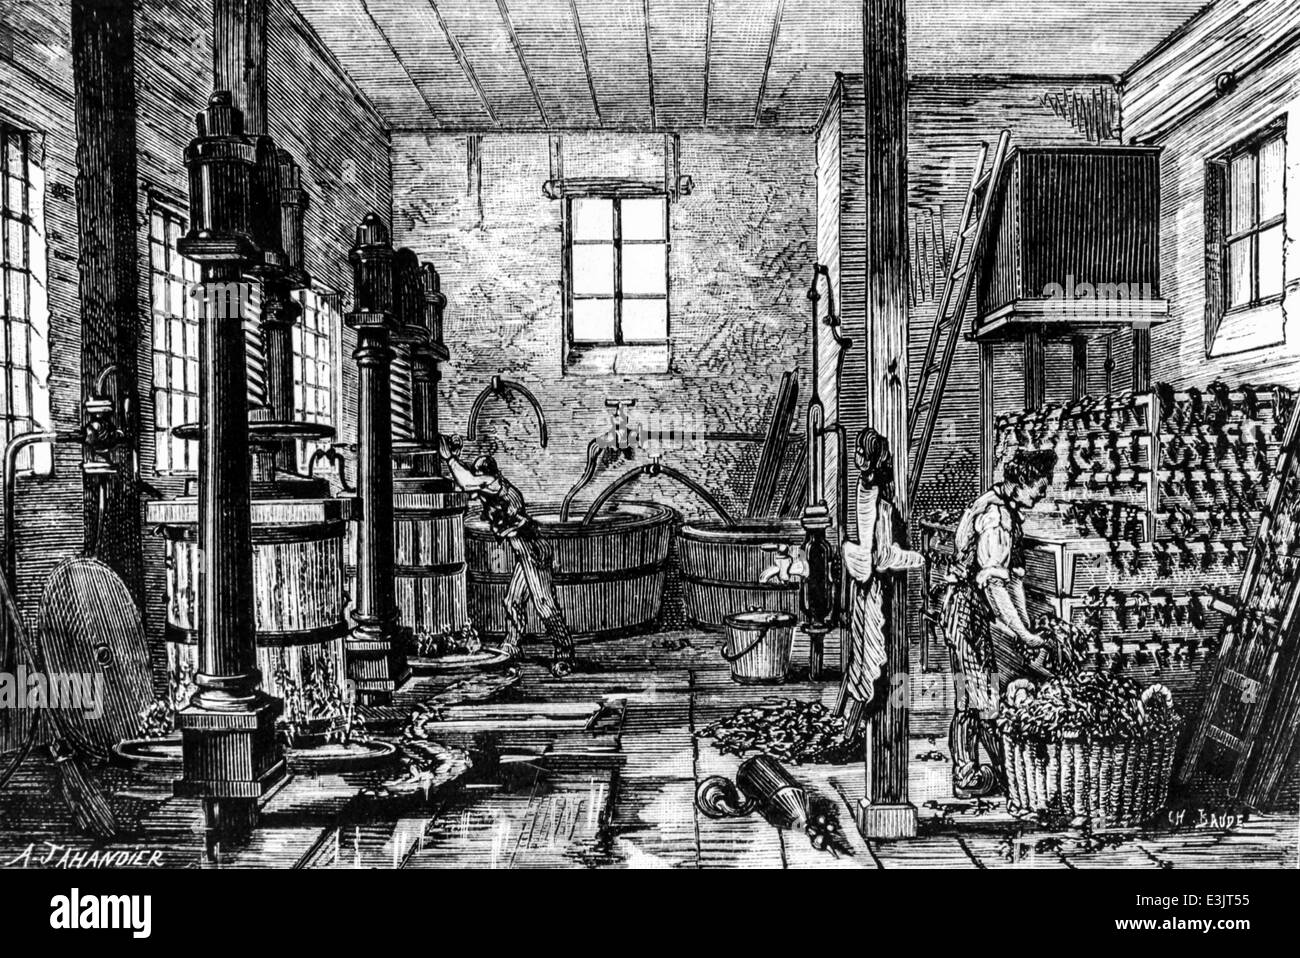 antique engraving of a tobacco manufactory' - Stock Image